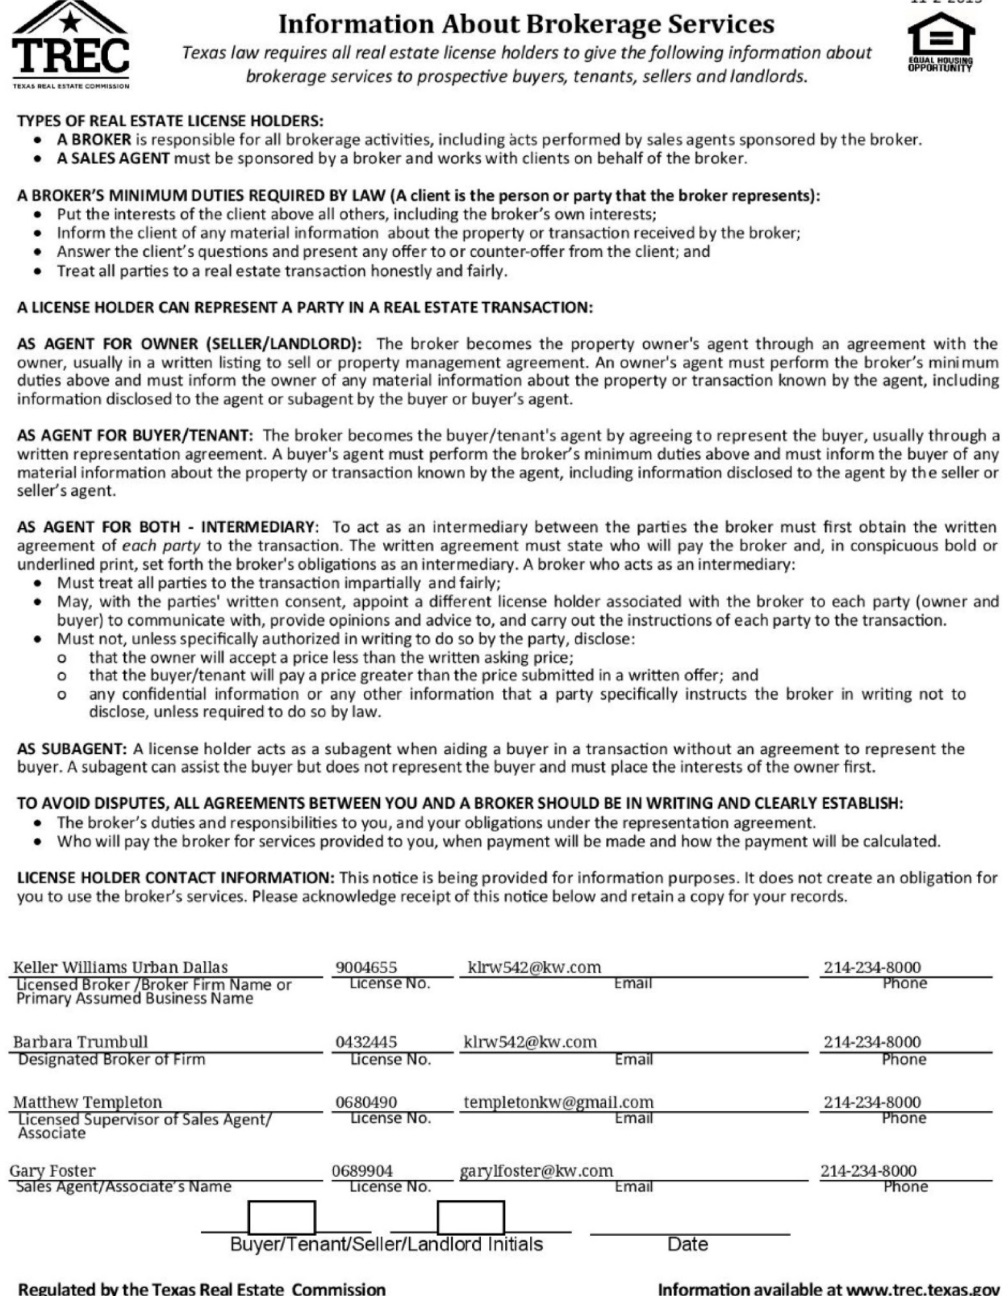 Texas Real Estate Commission (TREC) Information About Brokerage Services Form-159